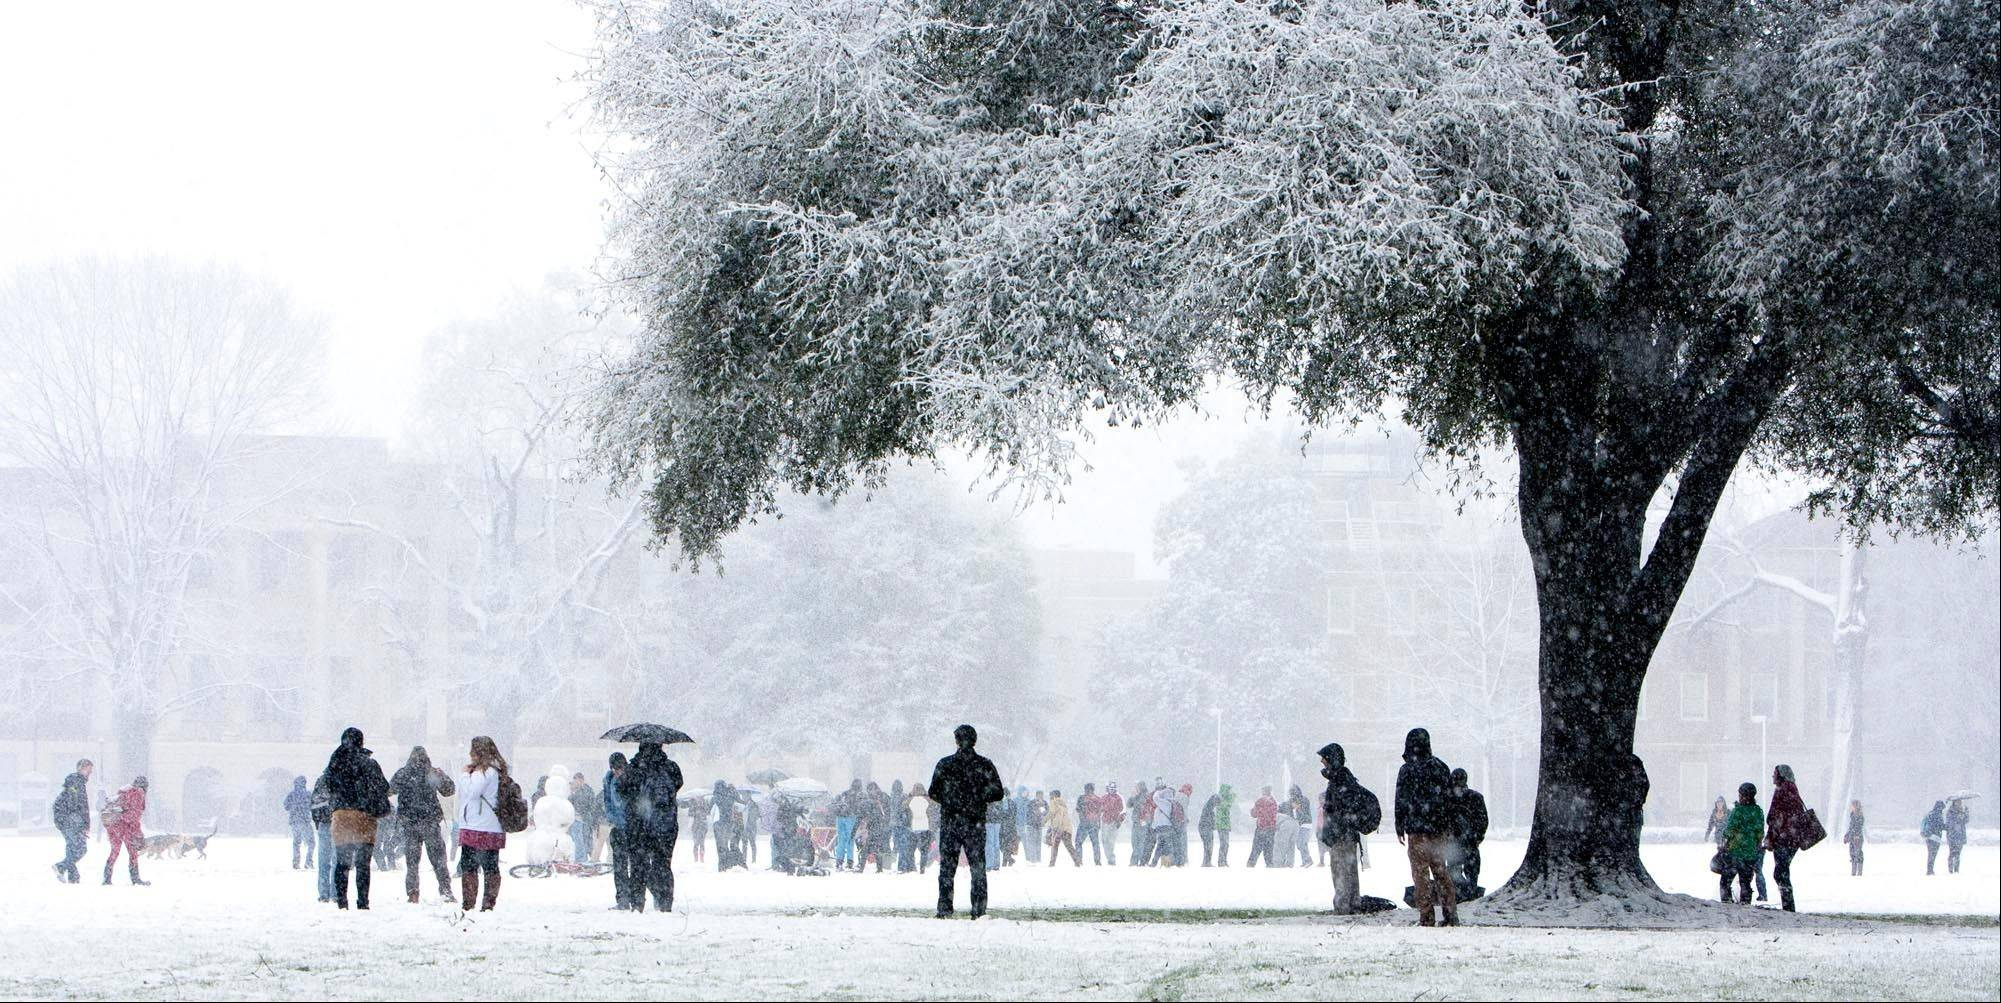 Hundreds of students gathered at the quad of the University of Alabama campus on Thursday Jan. 17, 2012 as heavy snowfall coated Tuscaloosa, Ala.